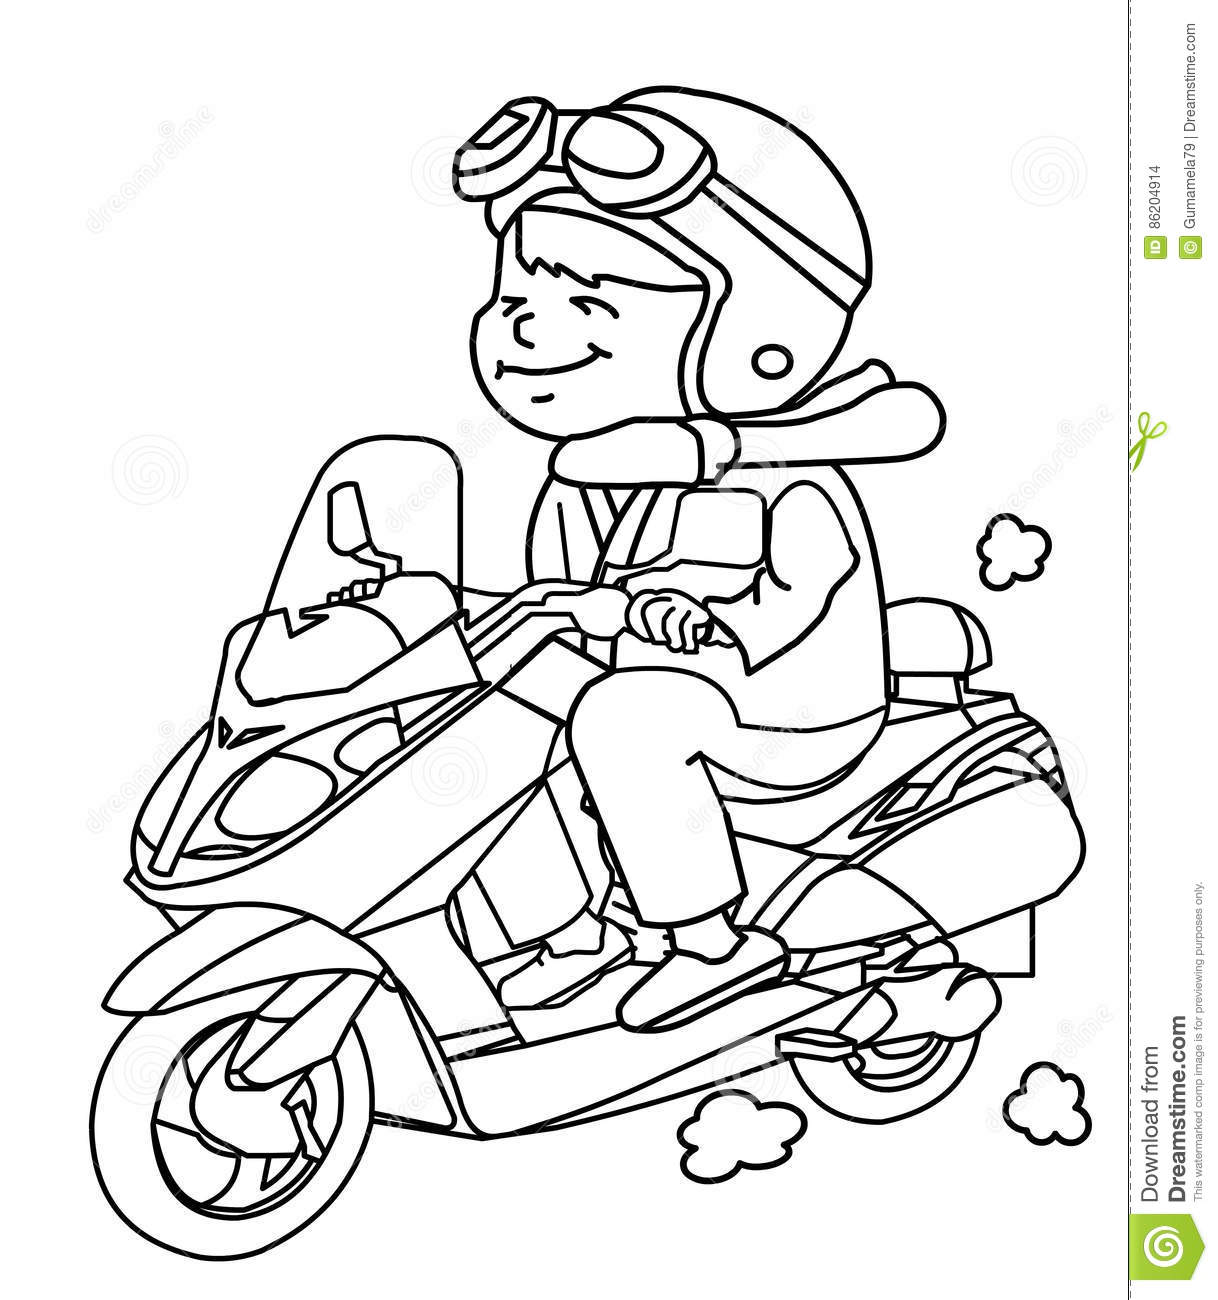 Hand drawn motorcycle rider coloring page for kids